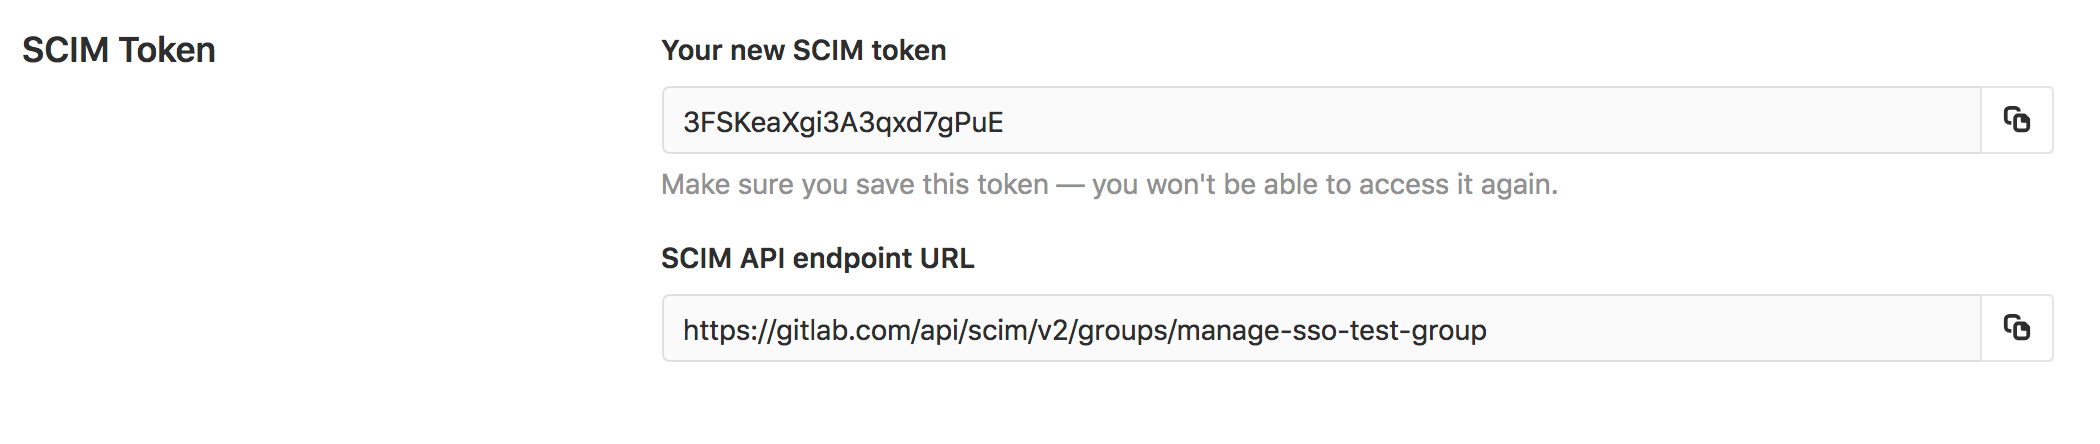 Automatically manage group members on GitLab.com using SCIM